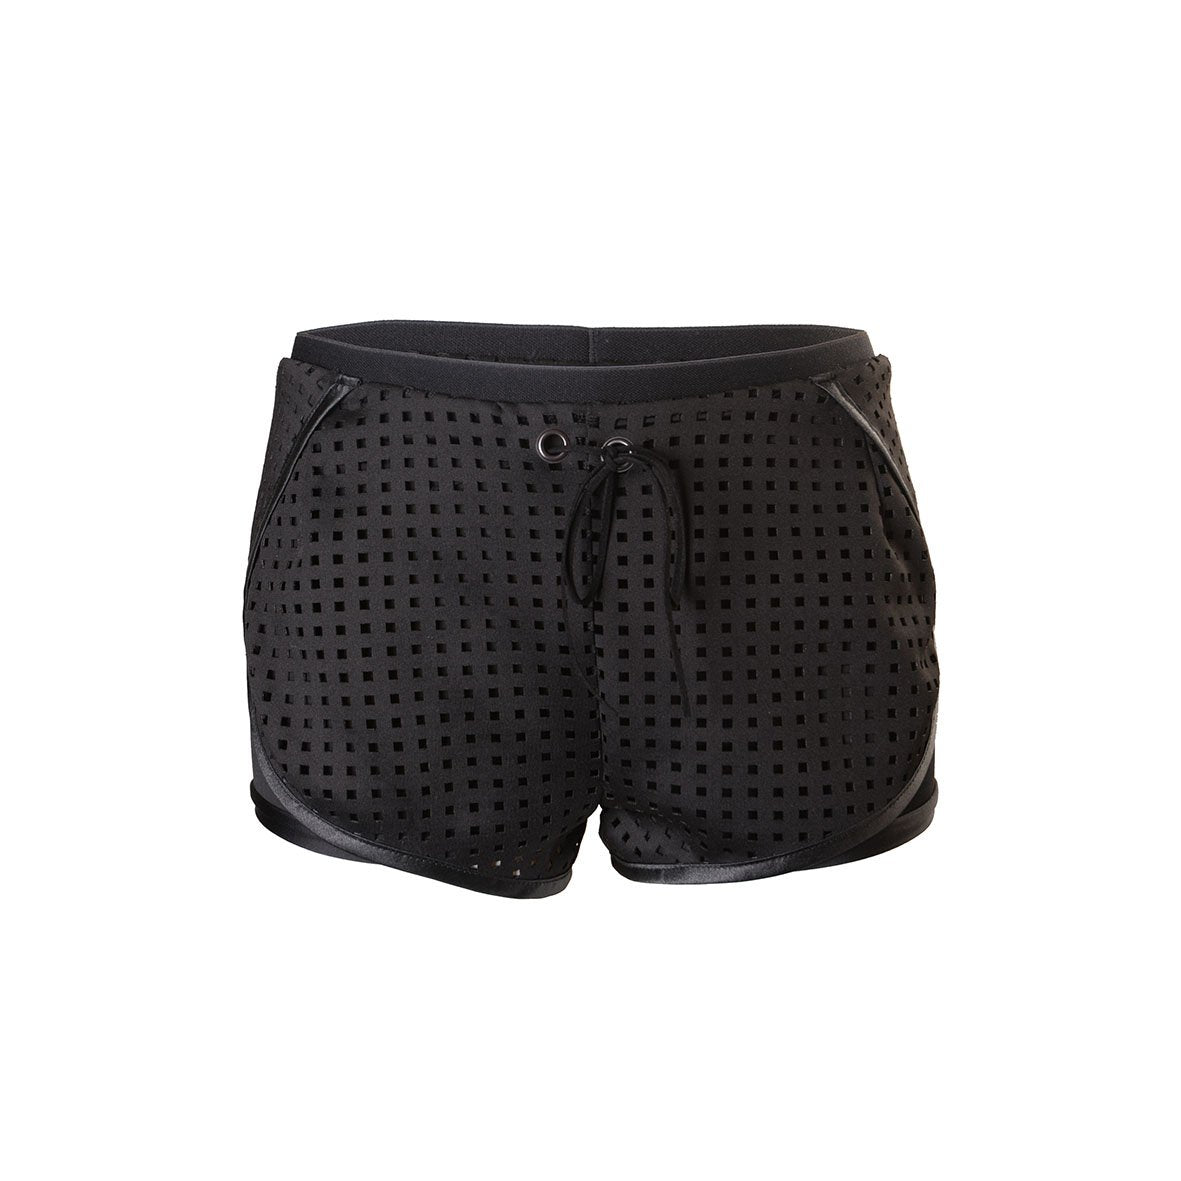 laufen running shorts for workout